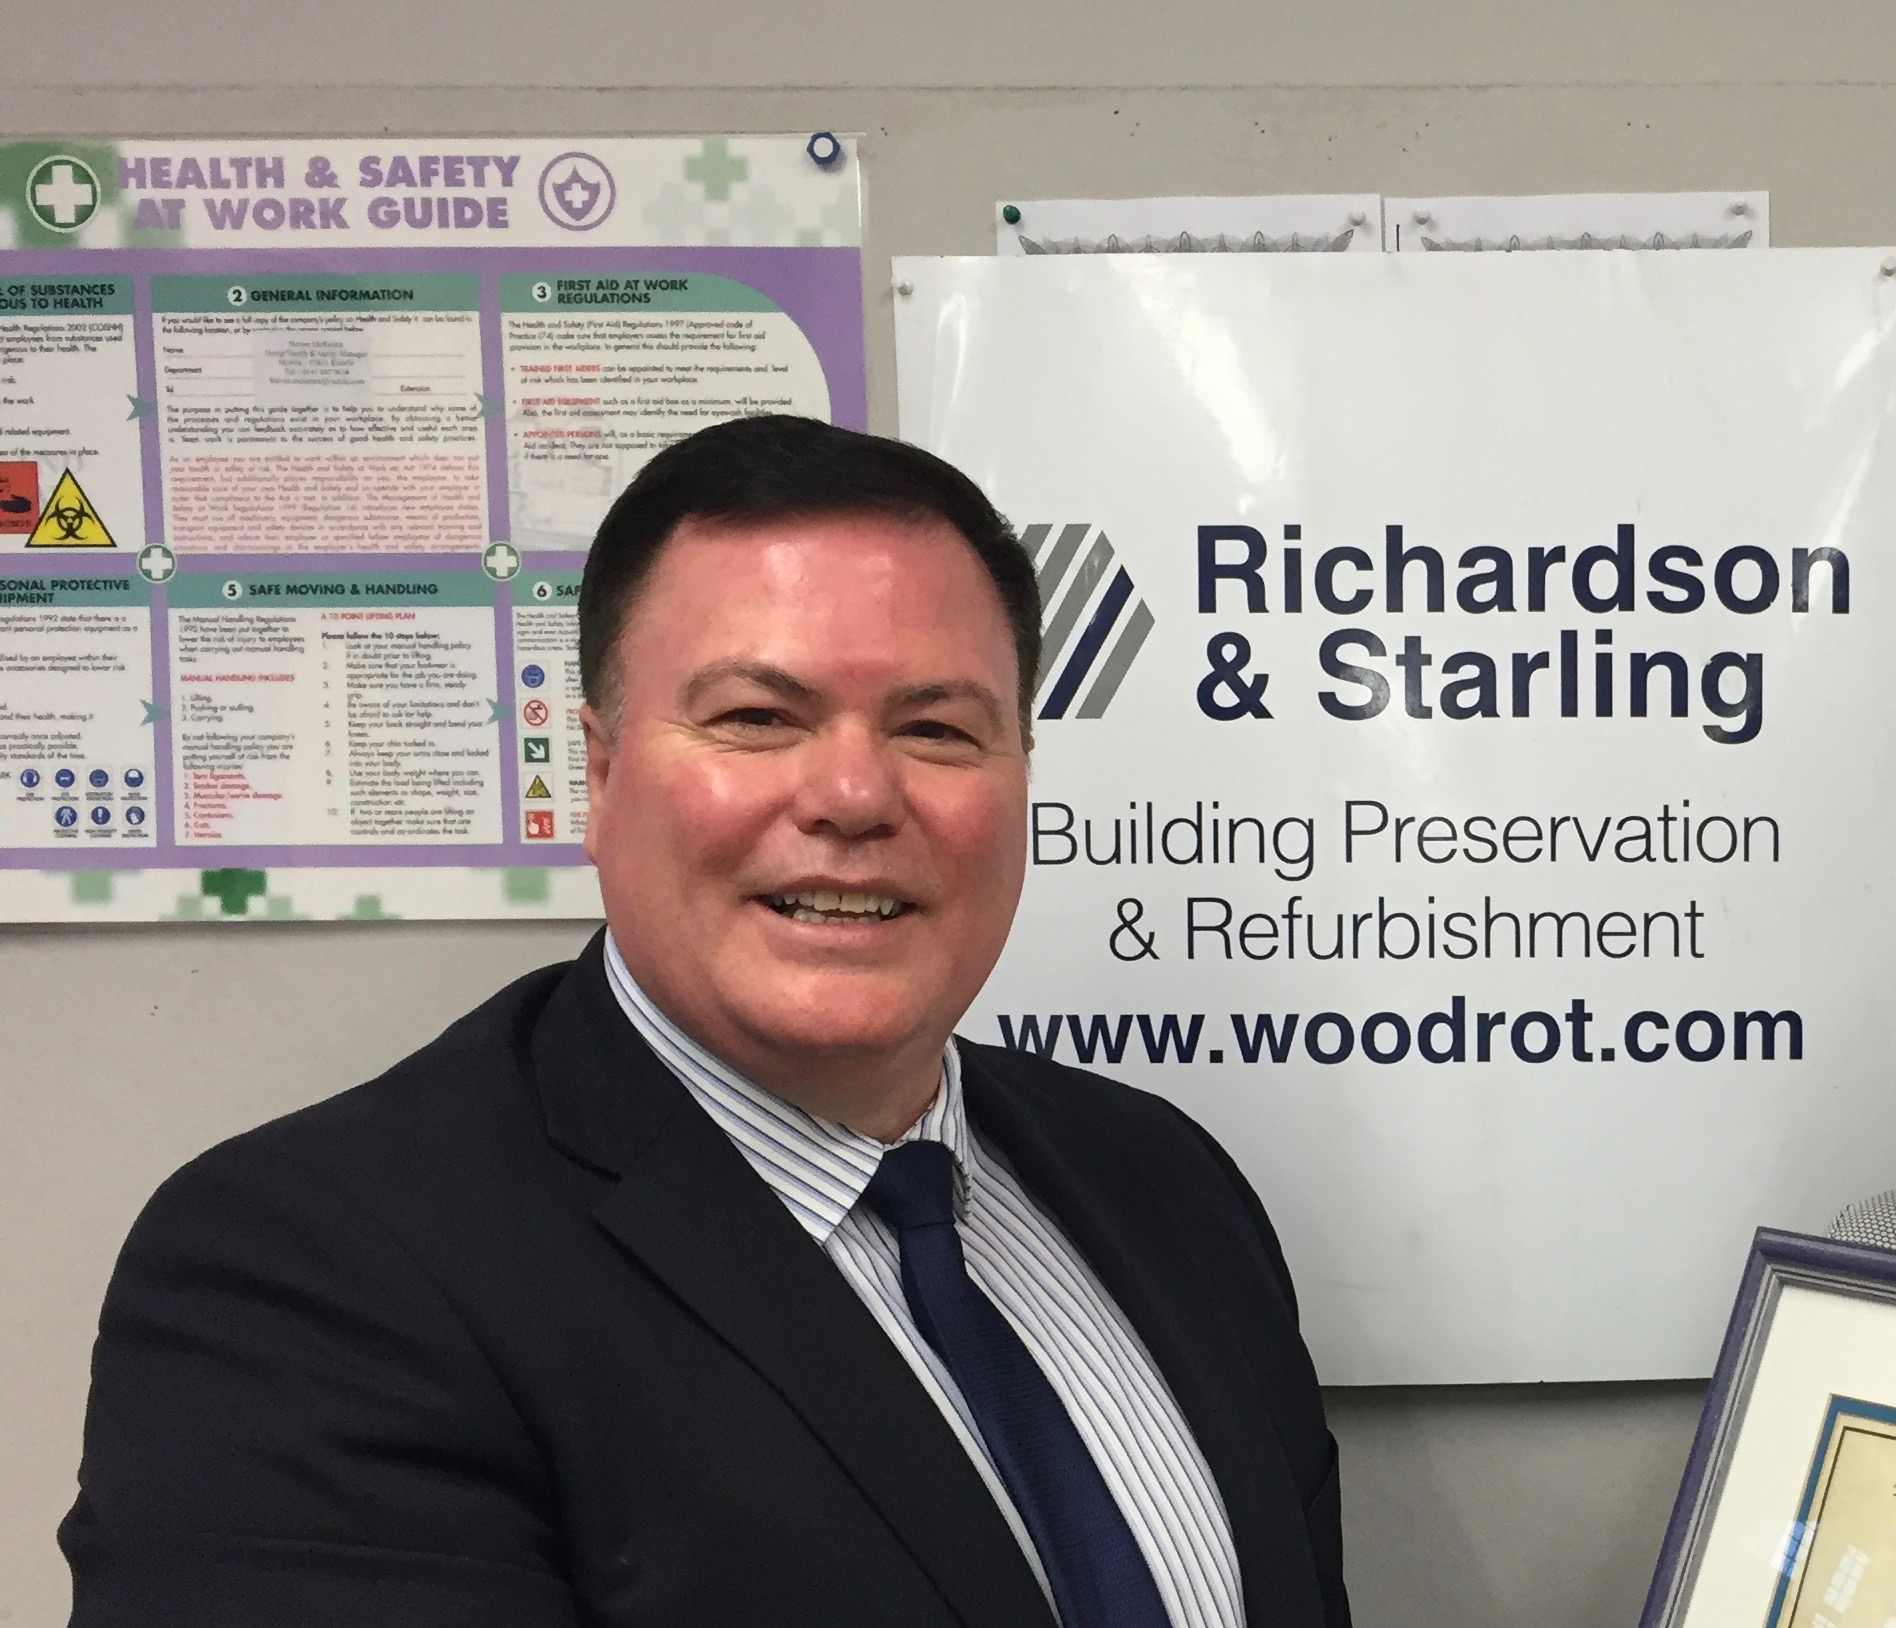 New office in Hawick opened by Richardson and Starling